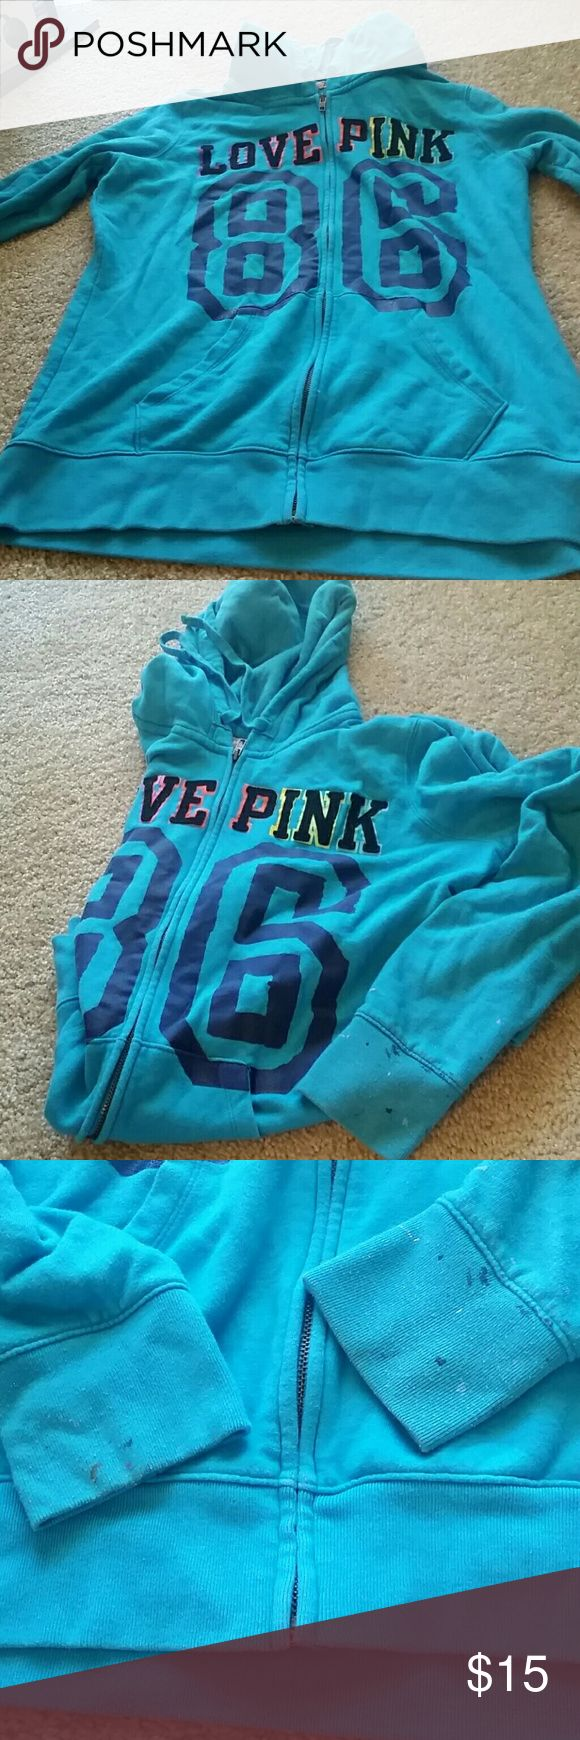 Pink zip up hoodie Some black and white paint on ends of sleeves shown in pic. Great condition otherwise. PINK Victoria's Secret Tops